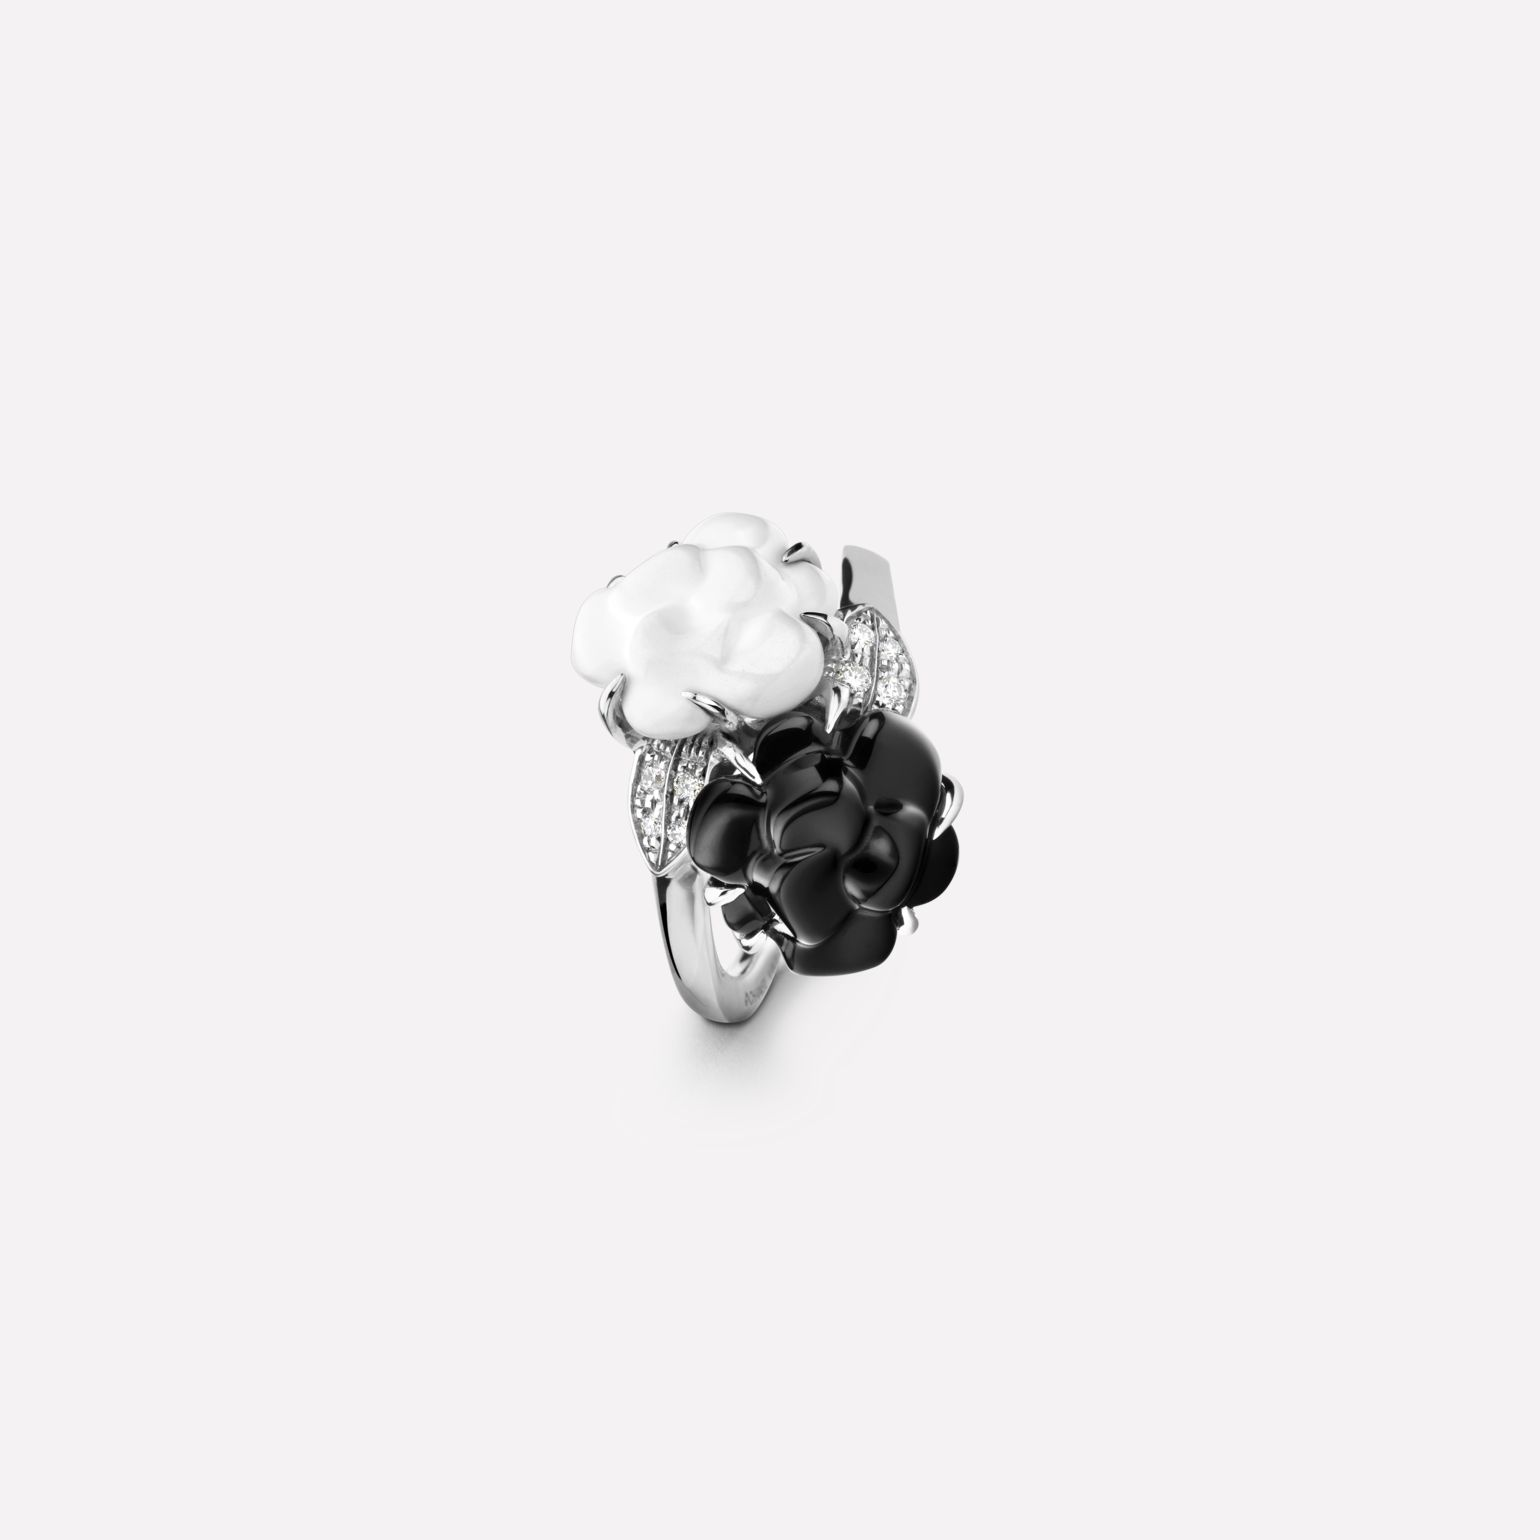 Camélia ring Camélia Sculpté ring in white agate and black onyx, 18K white gold and diamonds